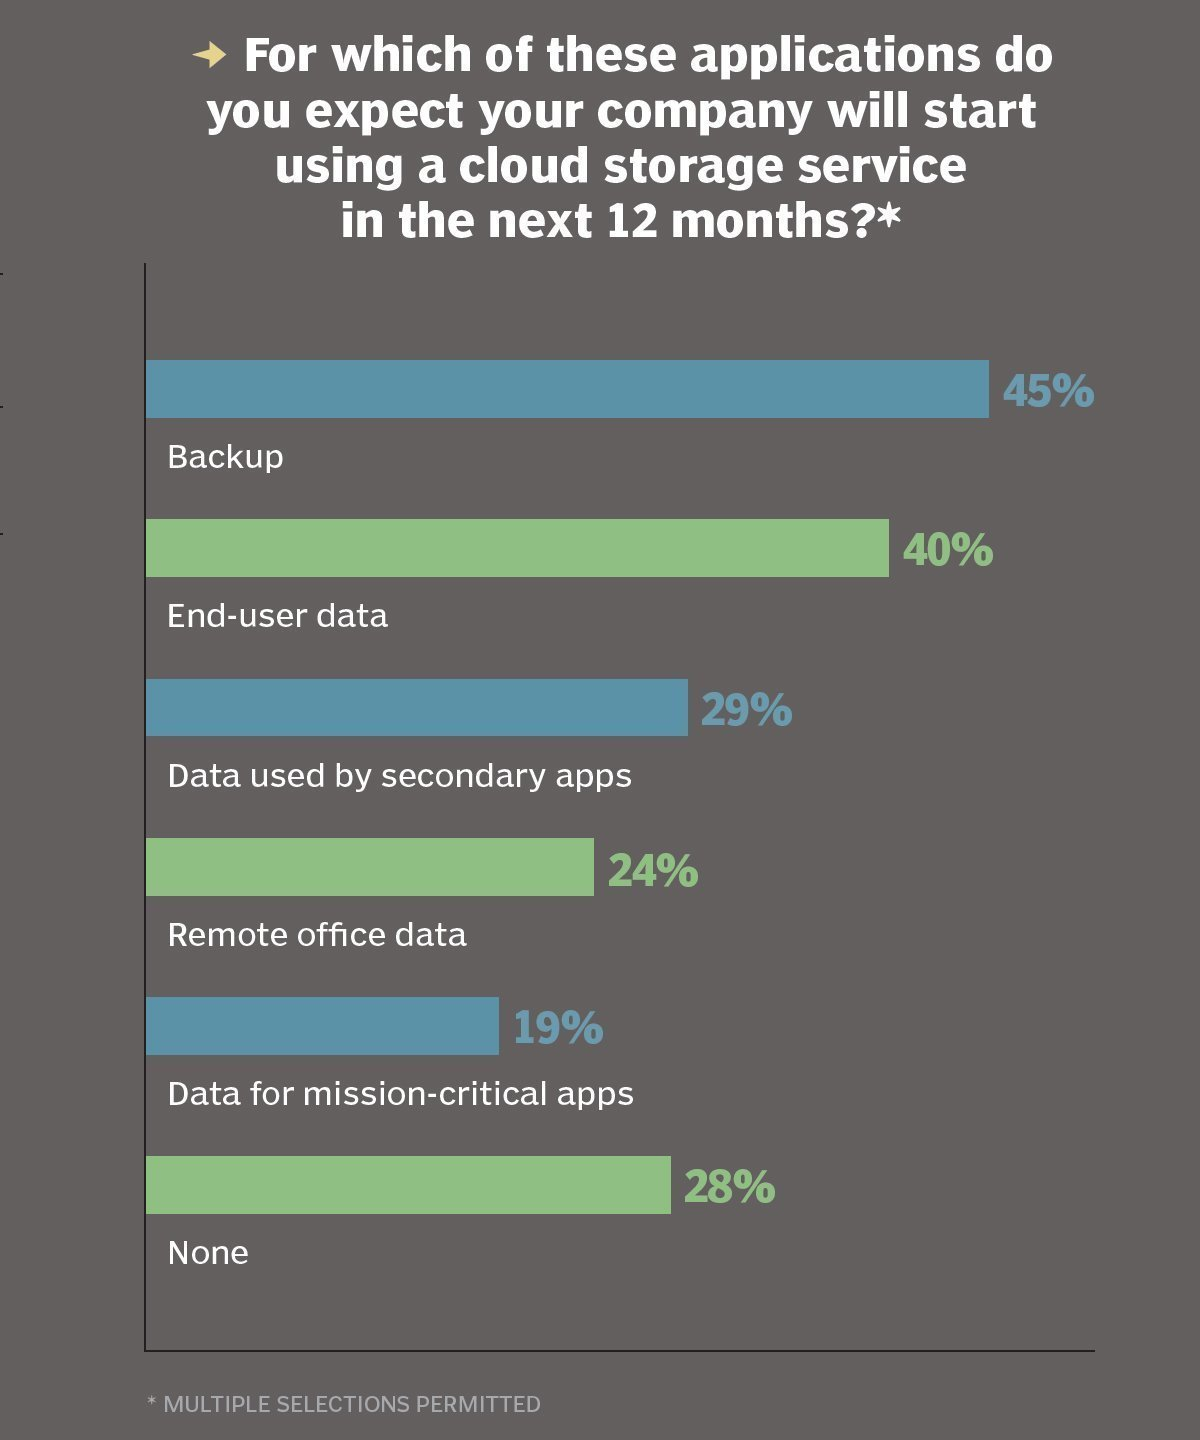 Plans to use cloud storage services